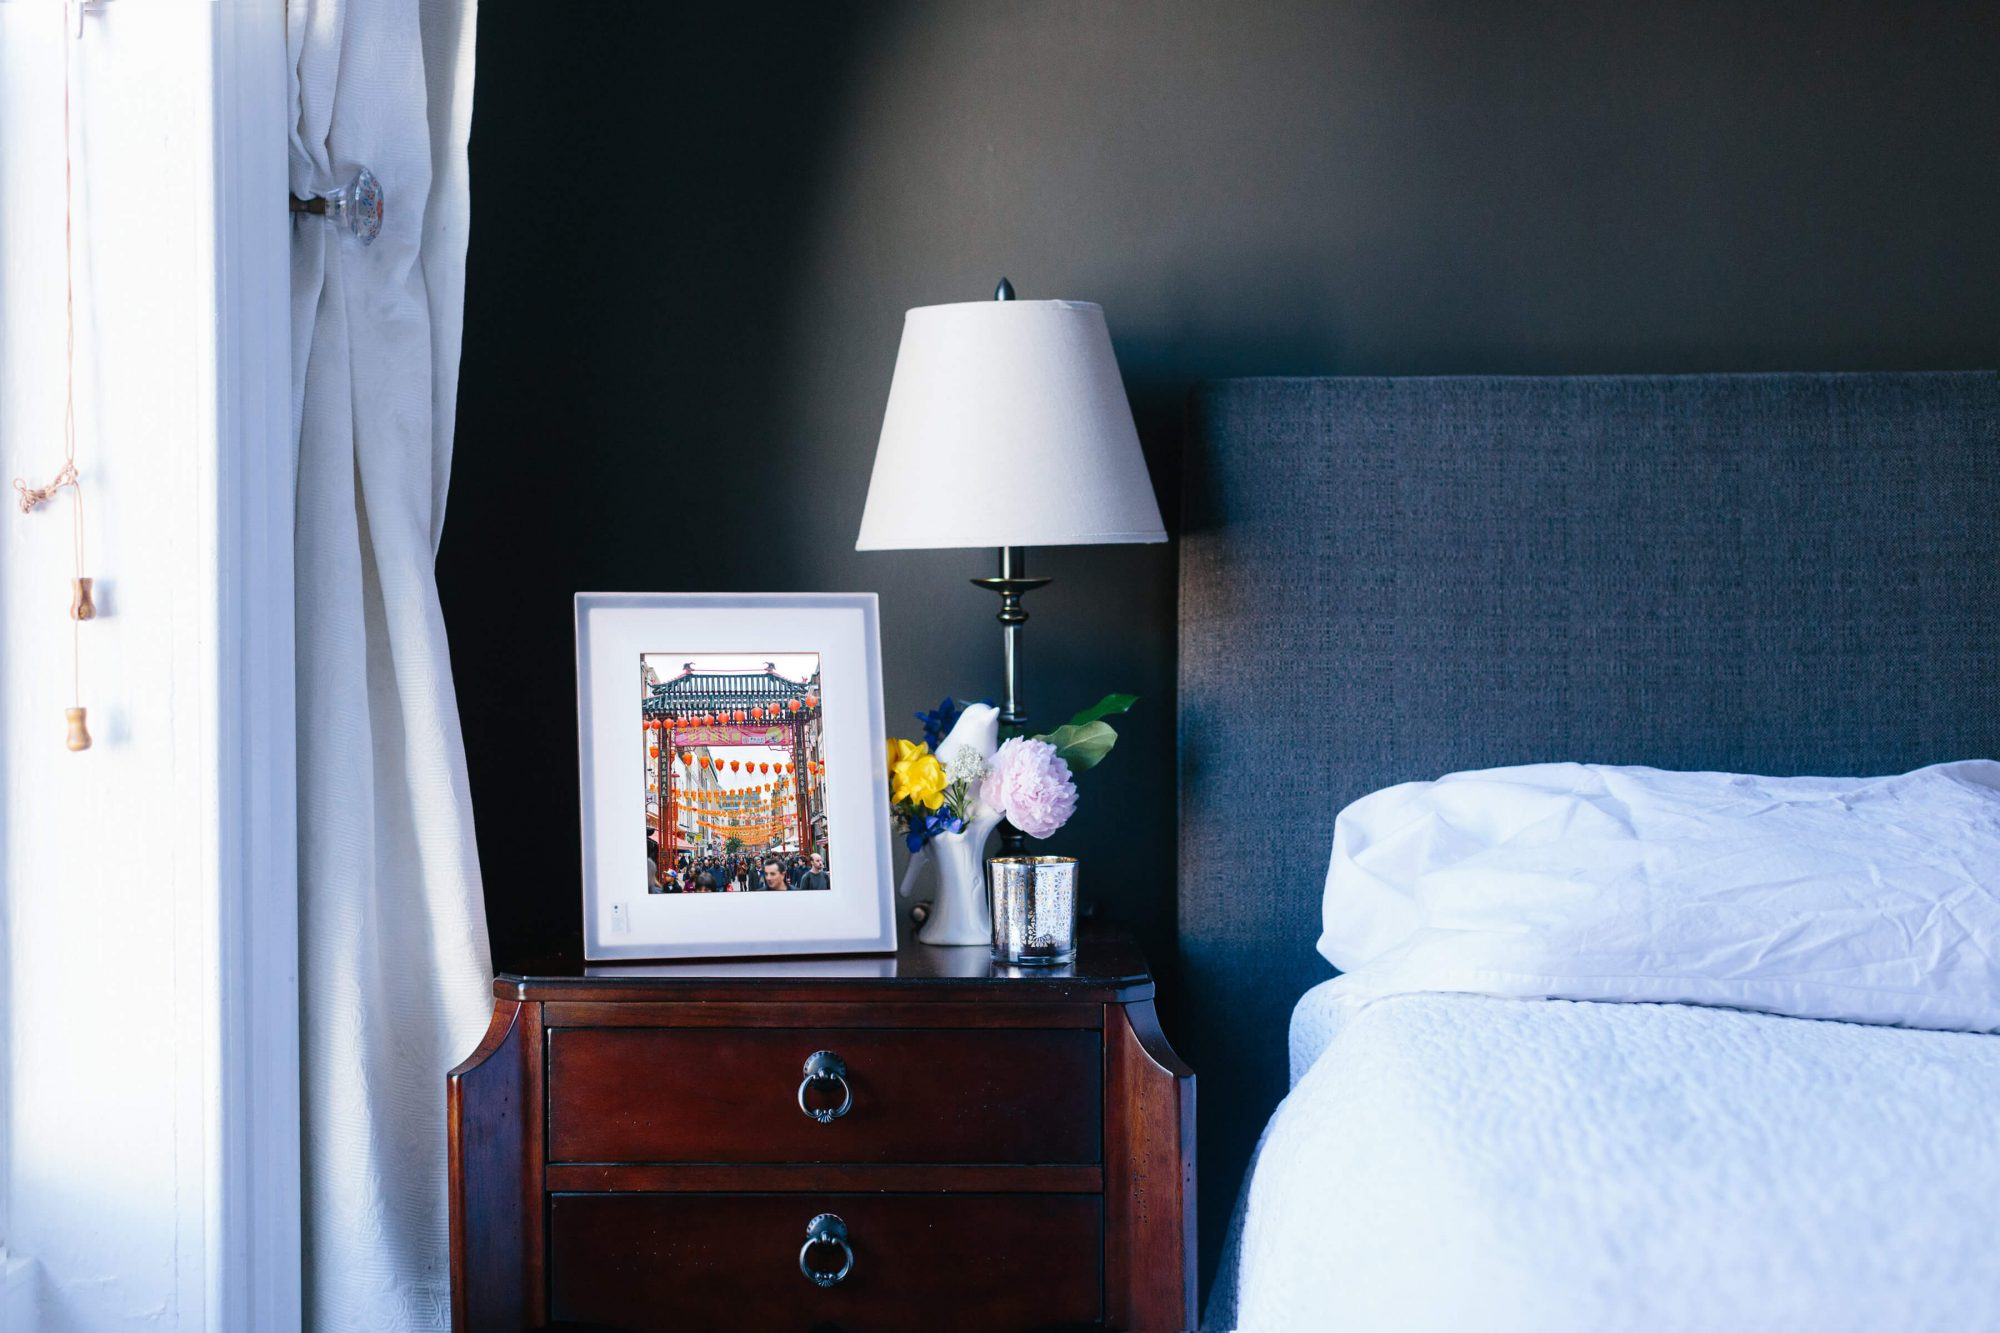 Aura digital photo frame sitting on a nightstand